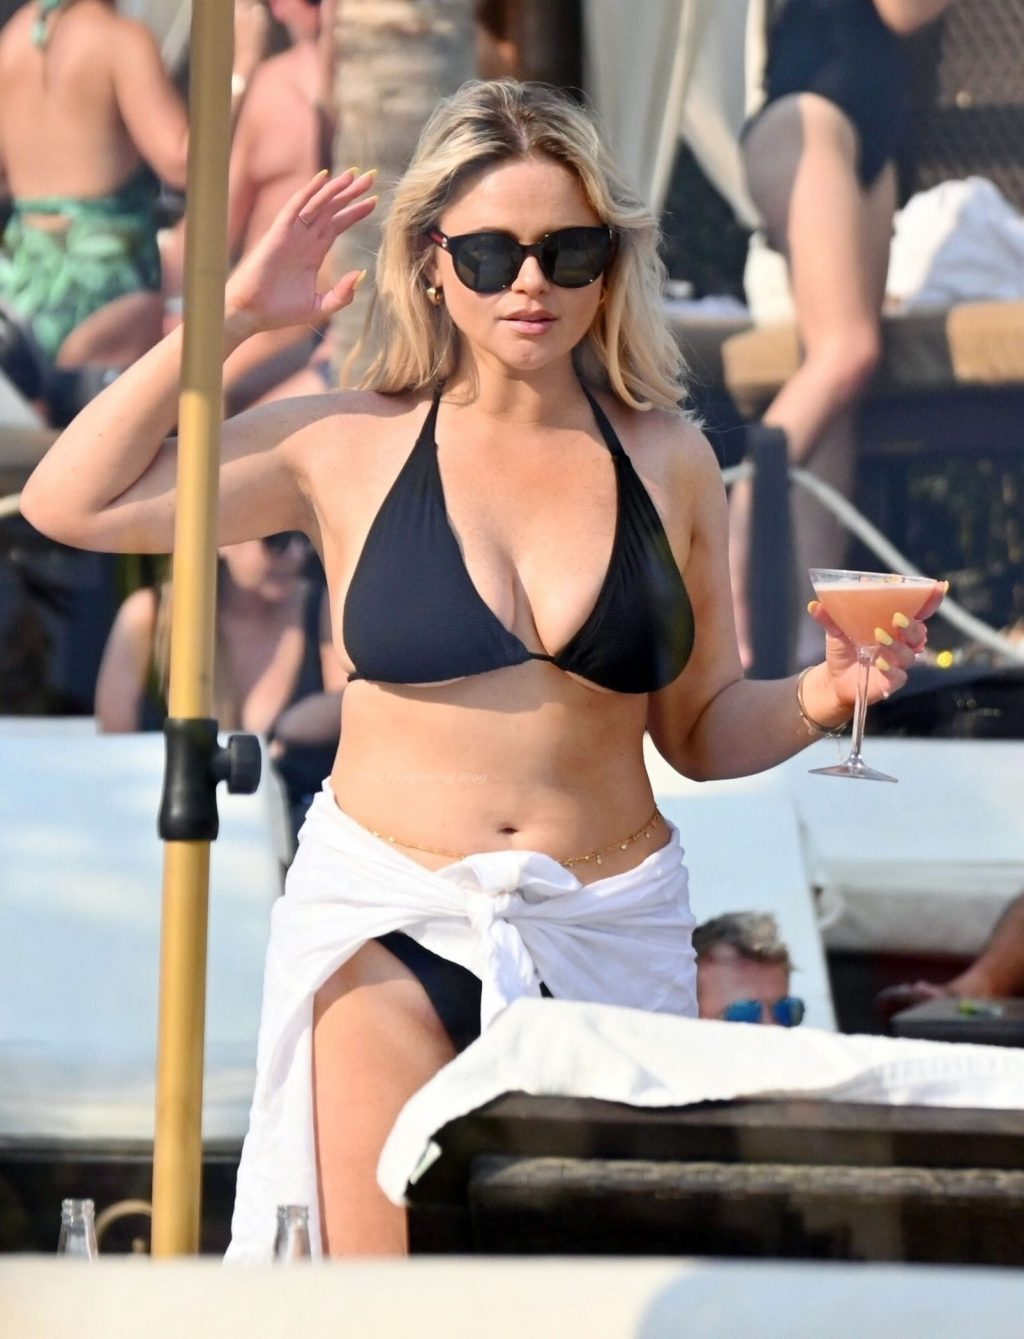 Emily Atack Looks in Great Spirits as She is Seen With a Mystery Man on Holiday in Marbella (101 Photos)